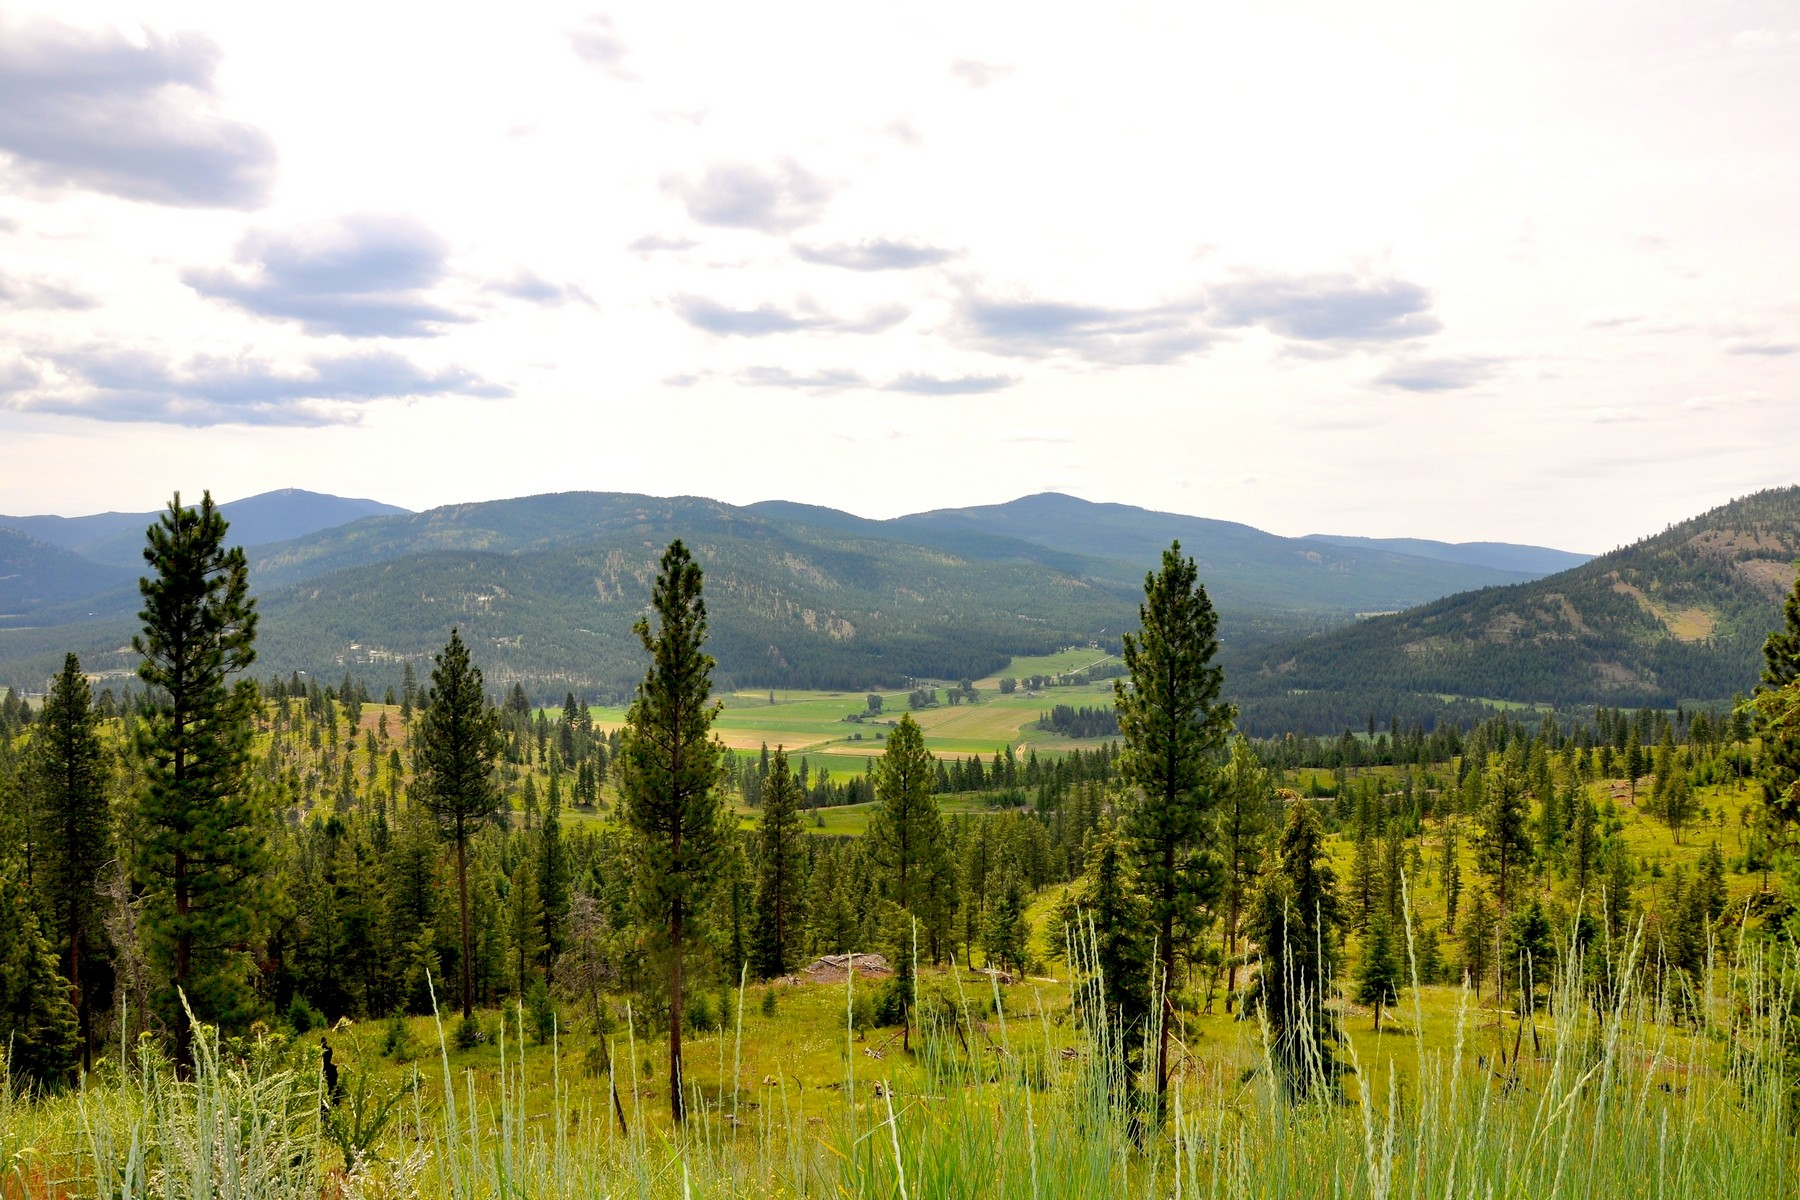 Land for Sale at Nhn Us Hwy 2 W, Jackson 13, Kila, MT 59920 Nhn Us Hwy 2 W Jackson 13 Kila, Montana 59920 United States